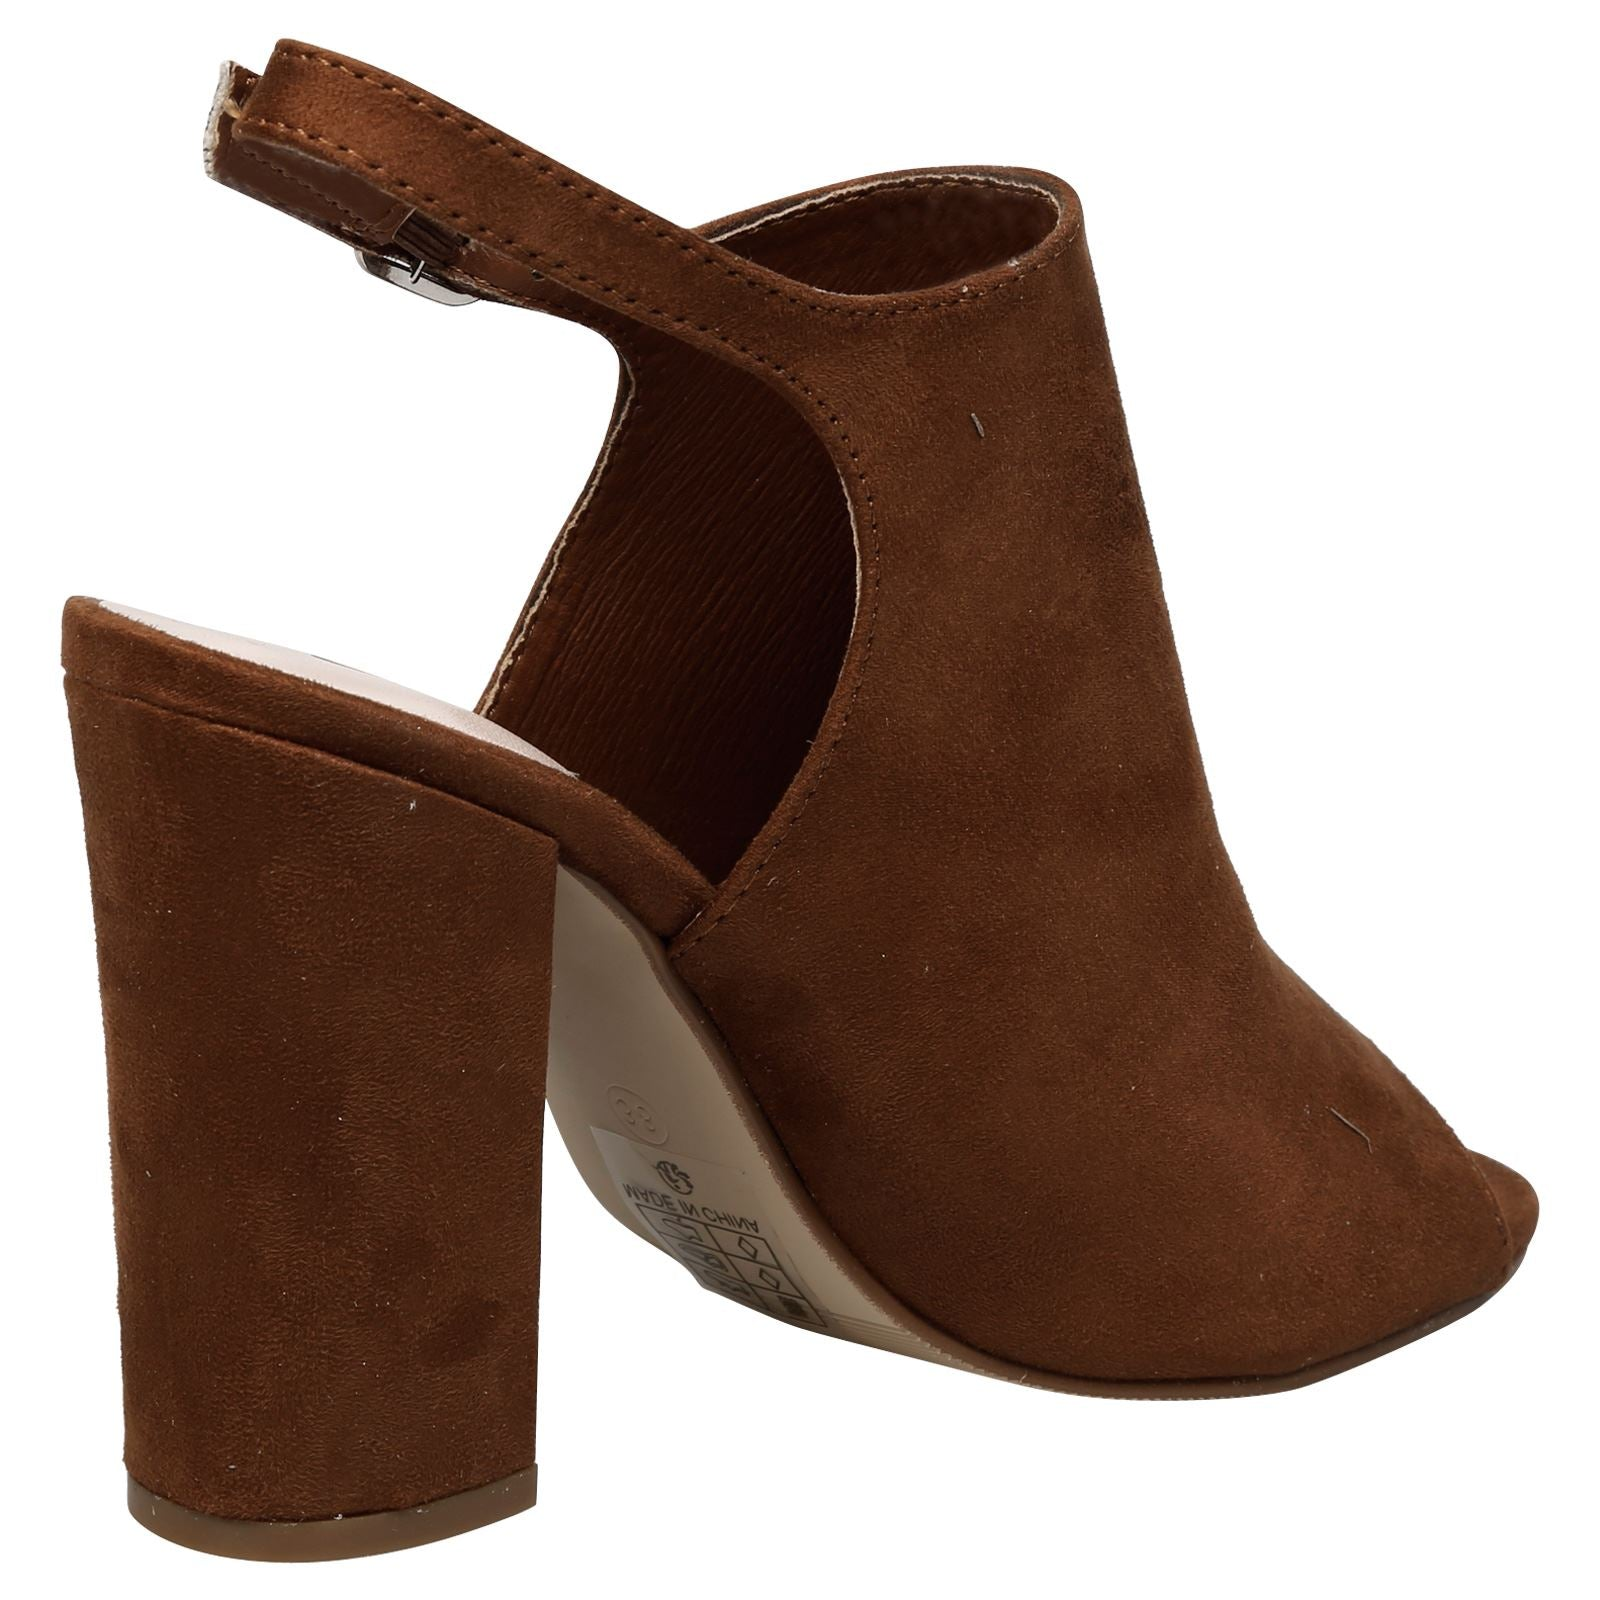 Felicia Slingback Peep Toe Ankle Boots in Camel Faux Suede